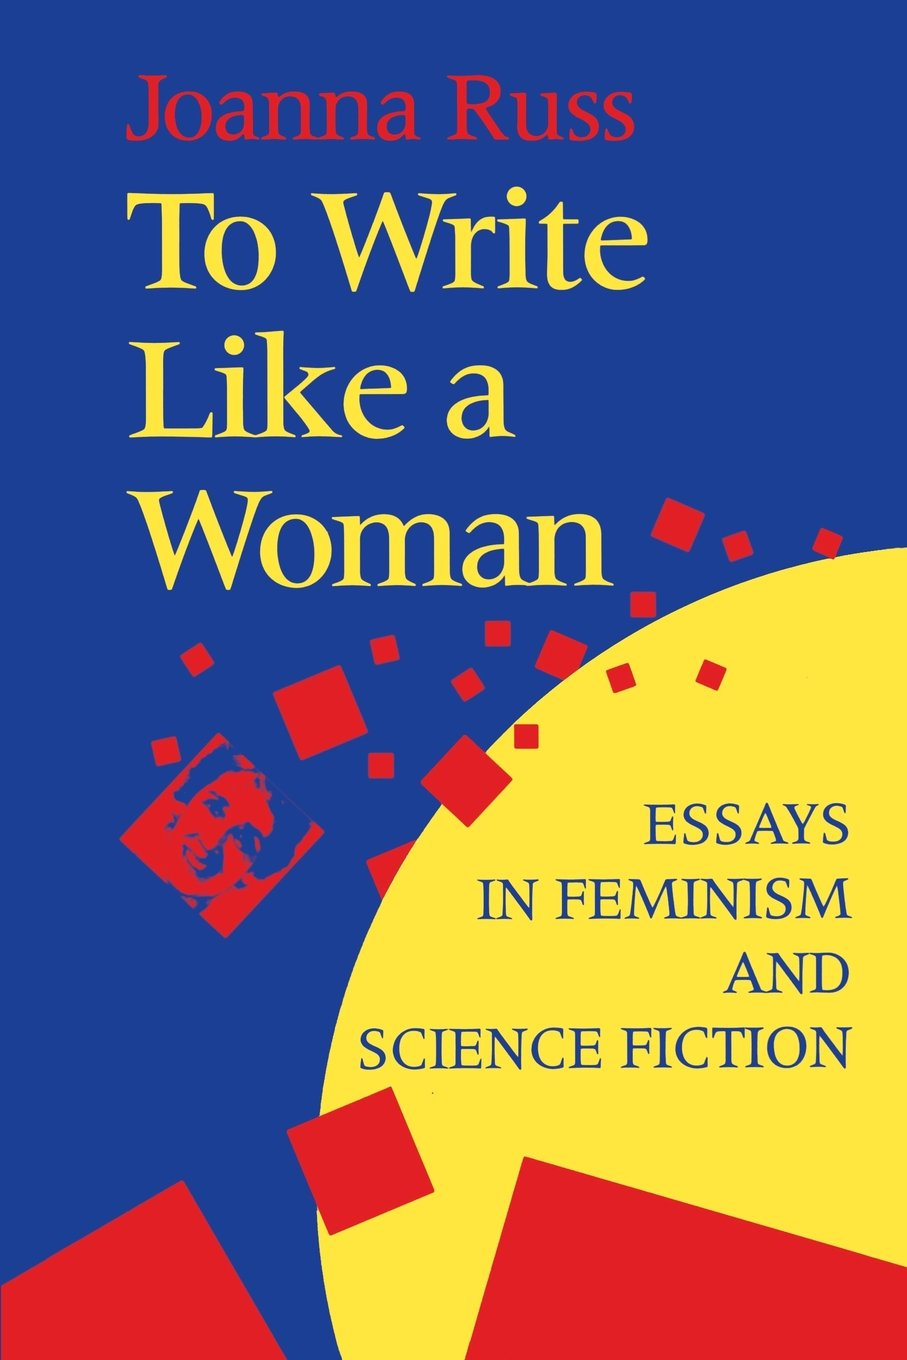 Apa Style Essay Paper Amazoncom To Write Like A Woman Essays In Feminism And Science Fiction   Joanna Russ Foreword By Sarah Lefanu Joanna Russ Books High School Personal Statement Essay Examples also Essay Papers Amazoncom To Write Like A Woman Essays In Feminism And Science  Public Health Essays